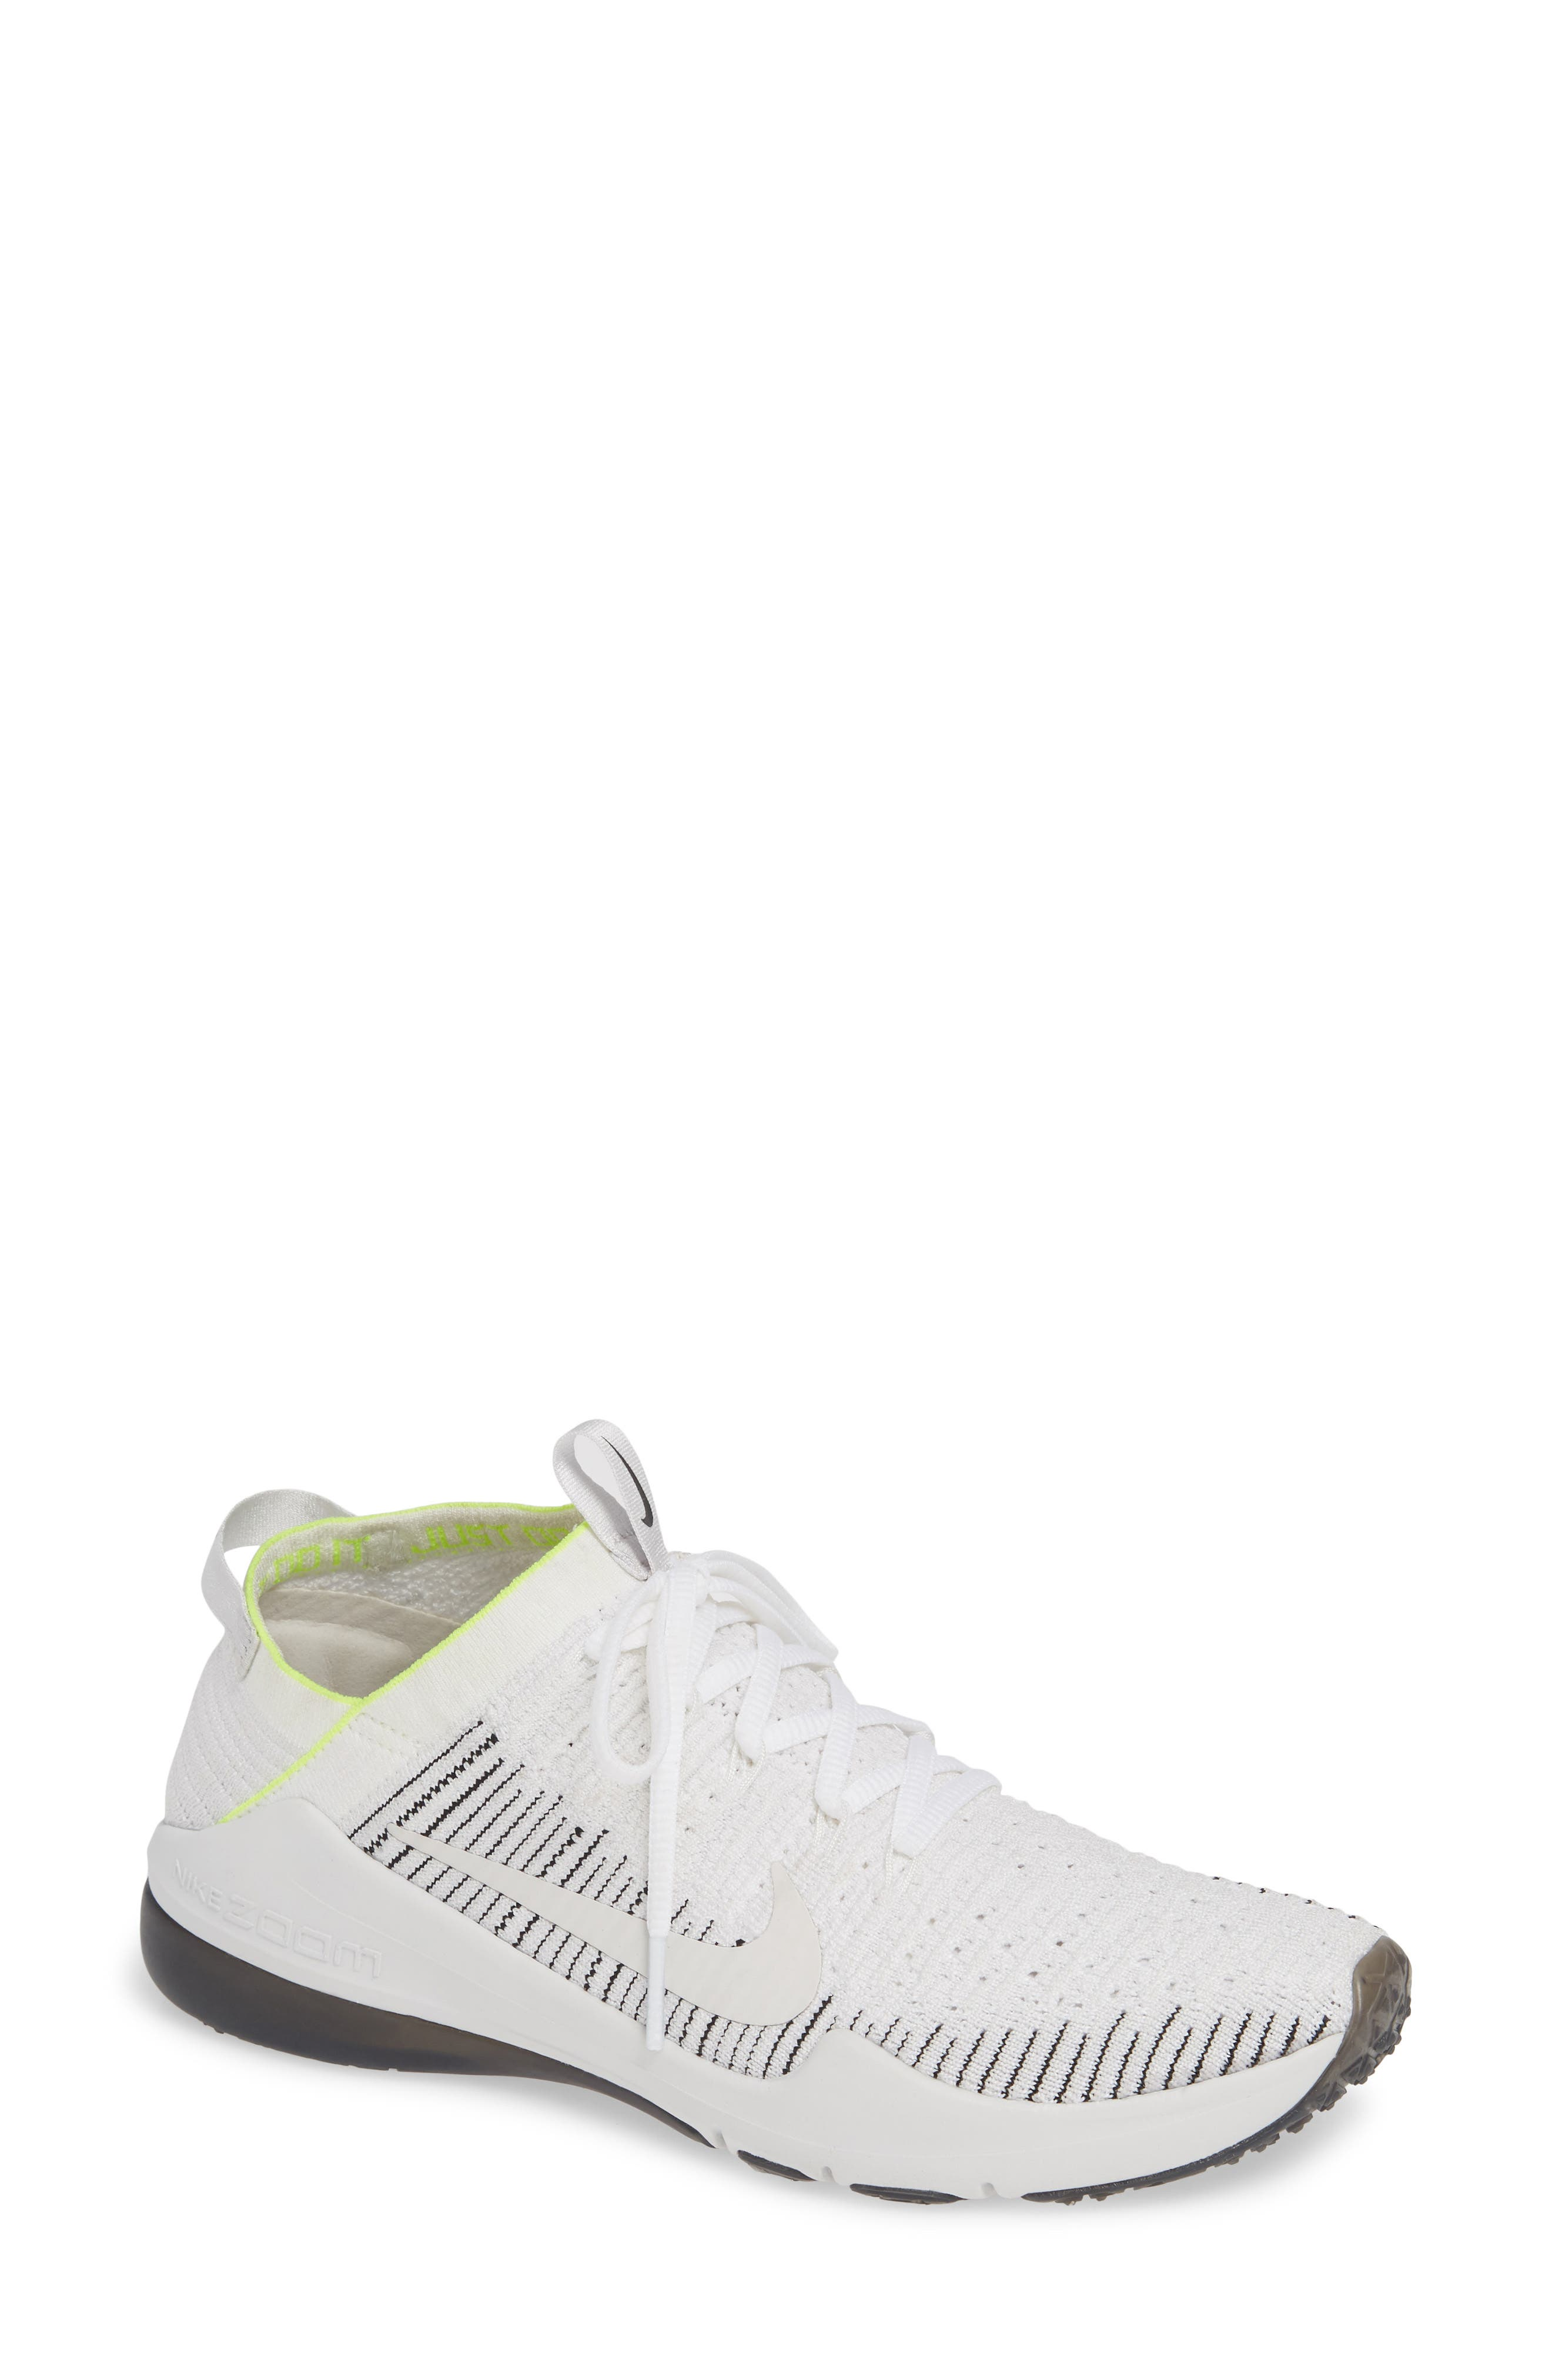 NIKE, Air Zoom Fearless Flyknit 2 Training Sneaker, Main thumbnail 1, color, WHITE/ PLATINUM TINT/ BLACK